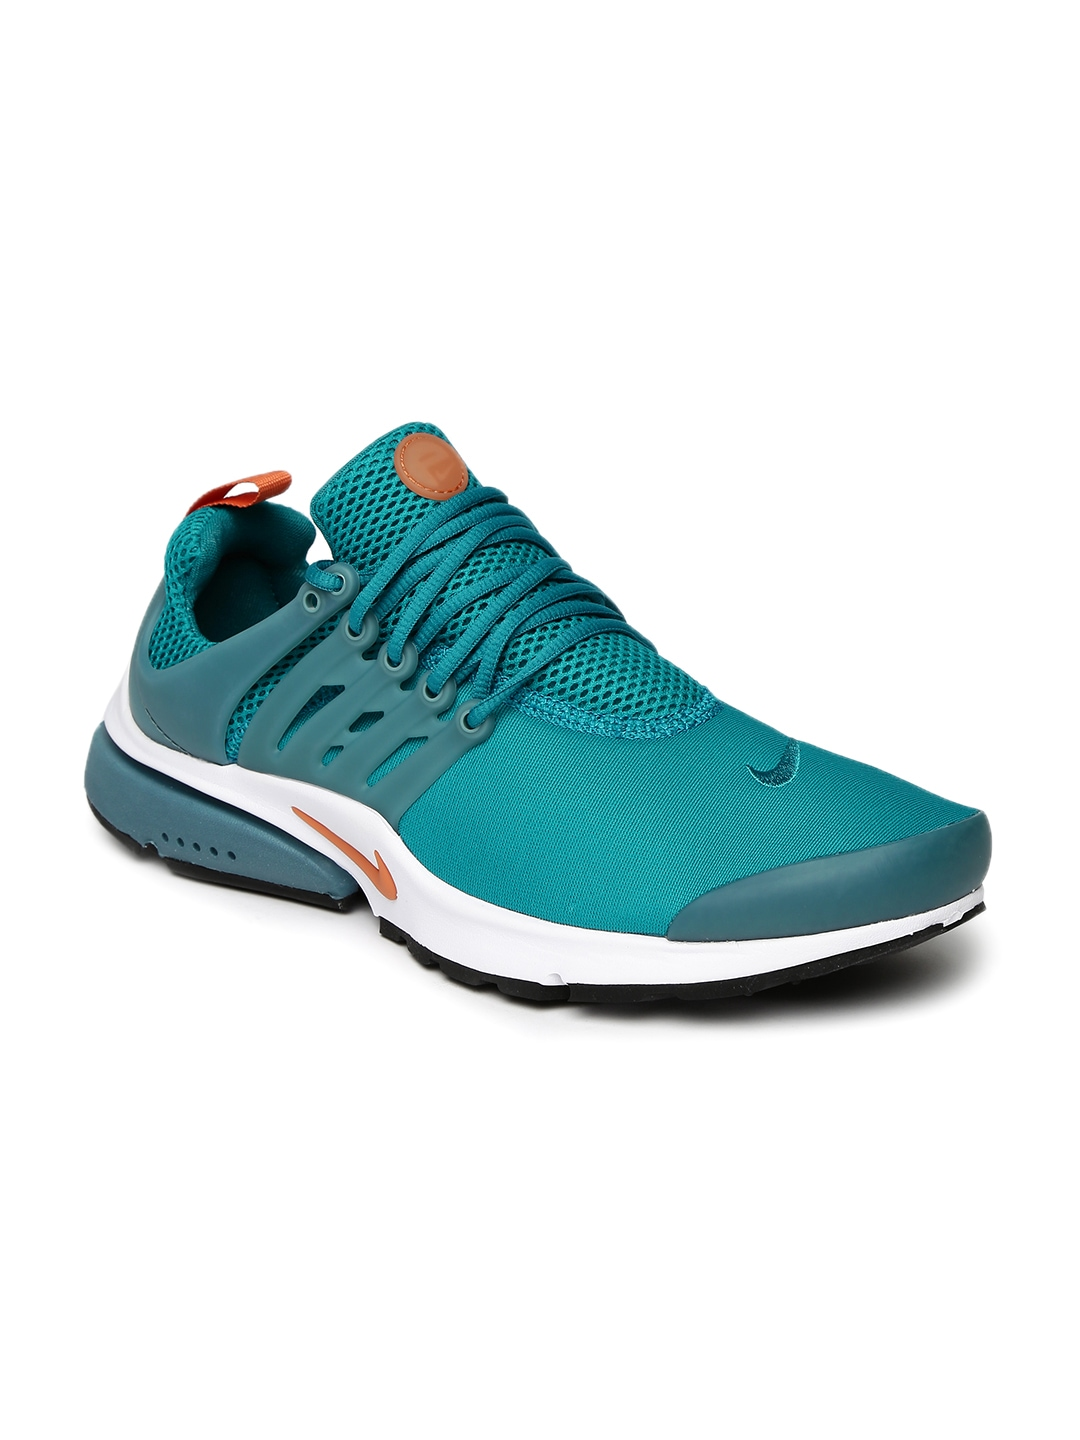 Deals On Nike Shoes In India